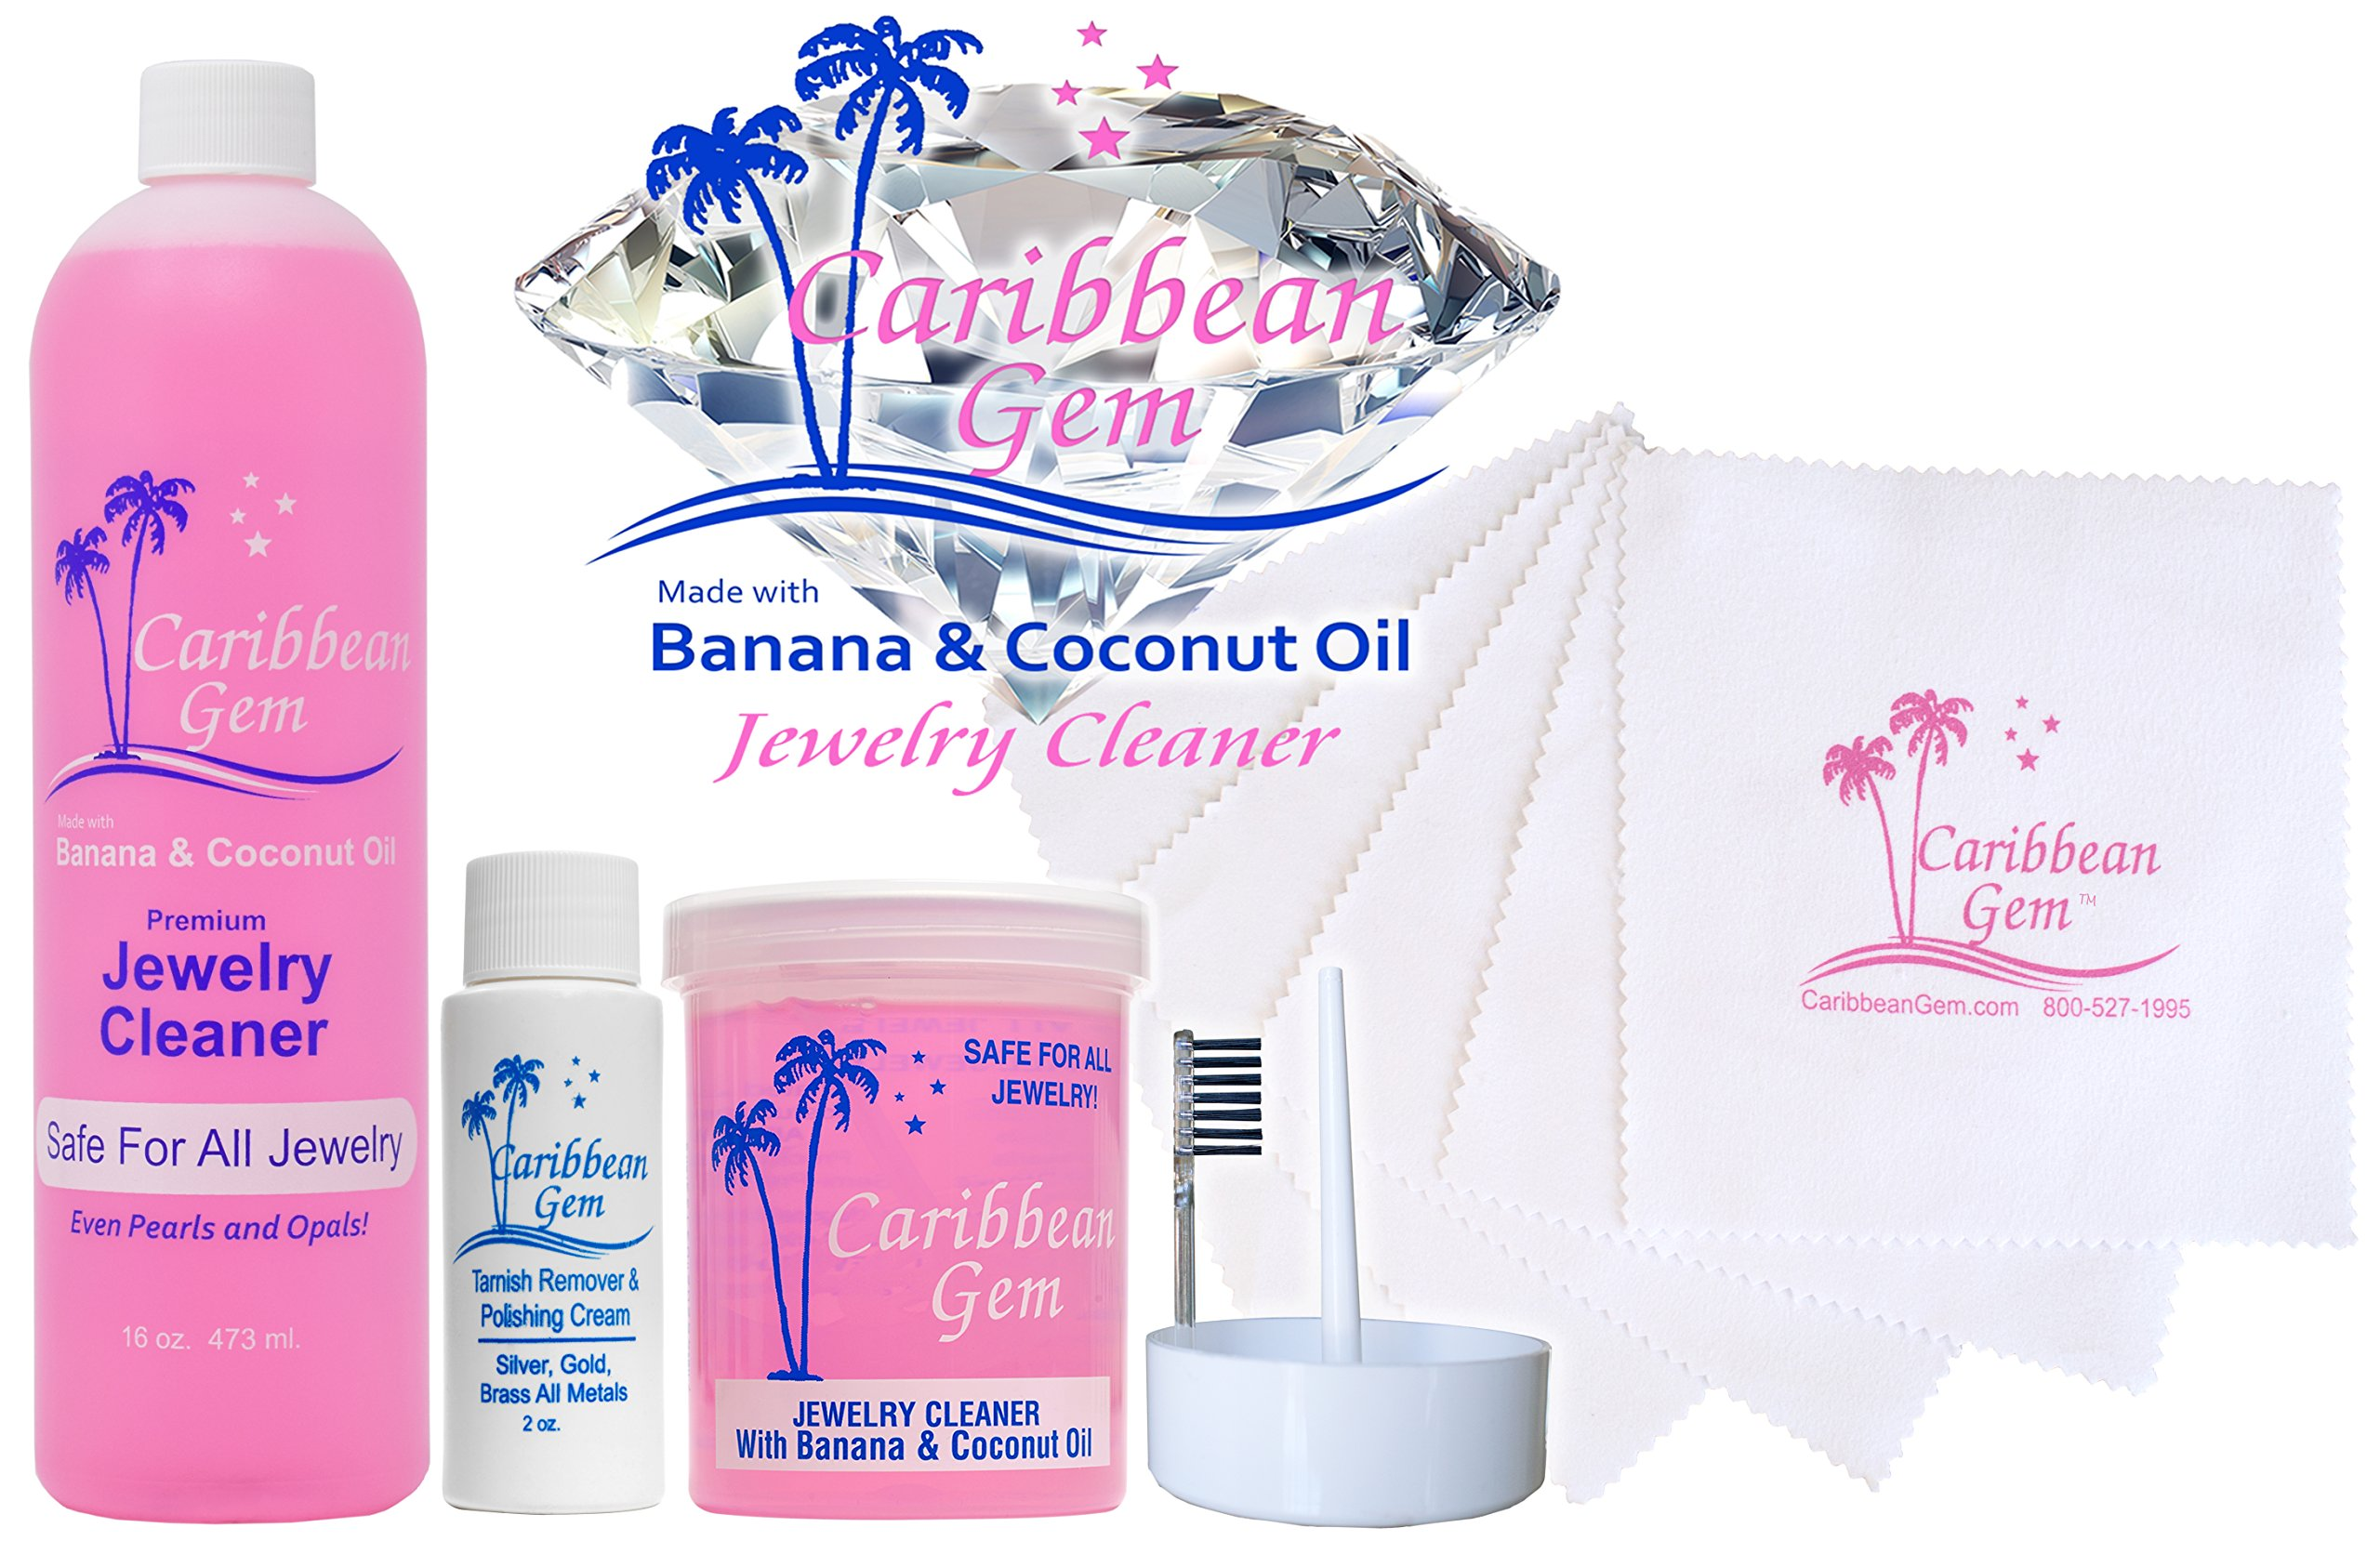 Caribbean Gem Ultra Jewelry Cleaning Kit with Cleaner, Polishing Cream, Cleaning Cloths